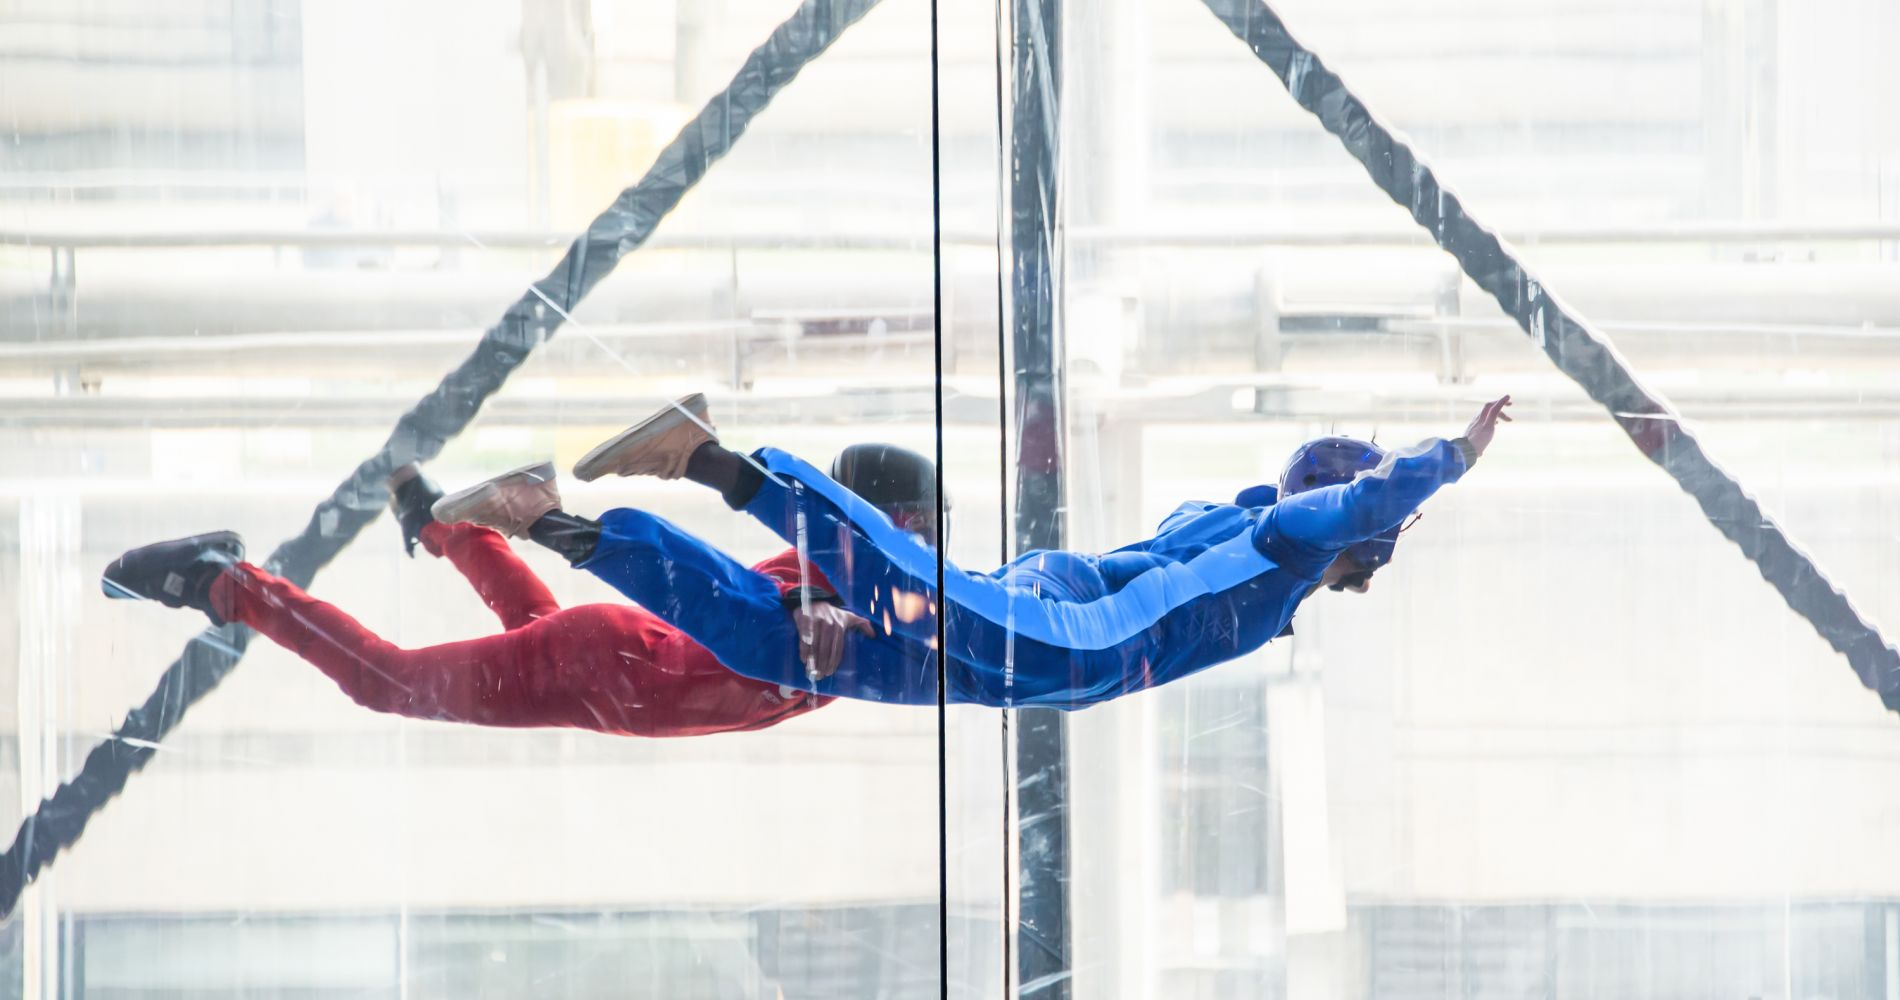 Indoor Skydiving in Singapore